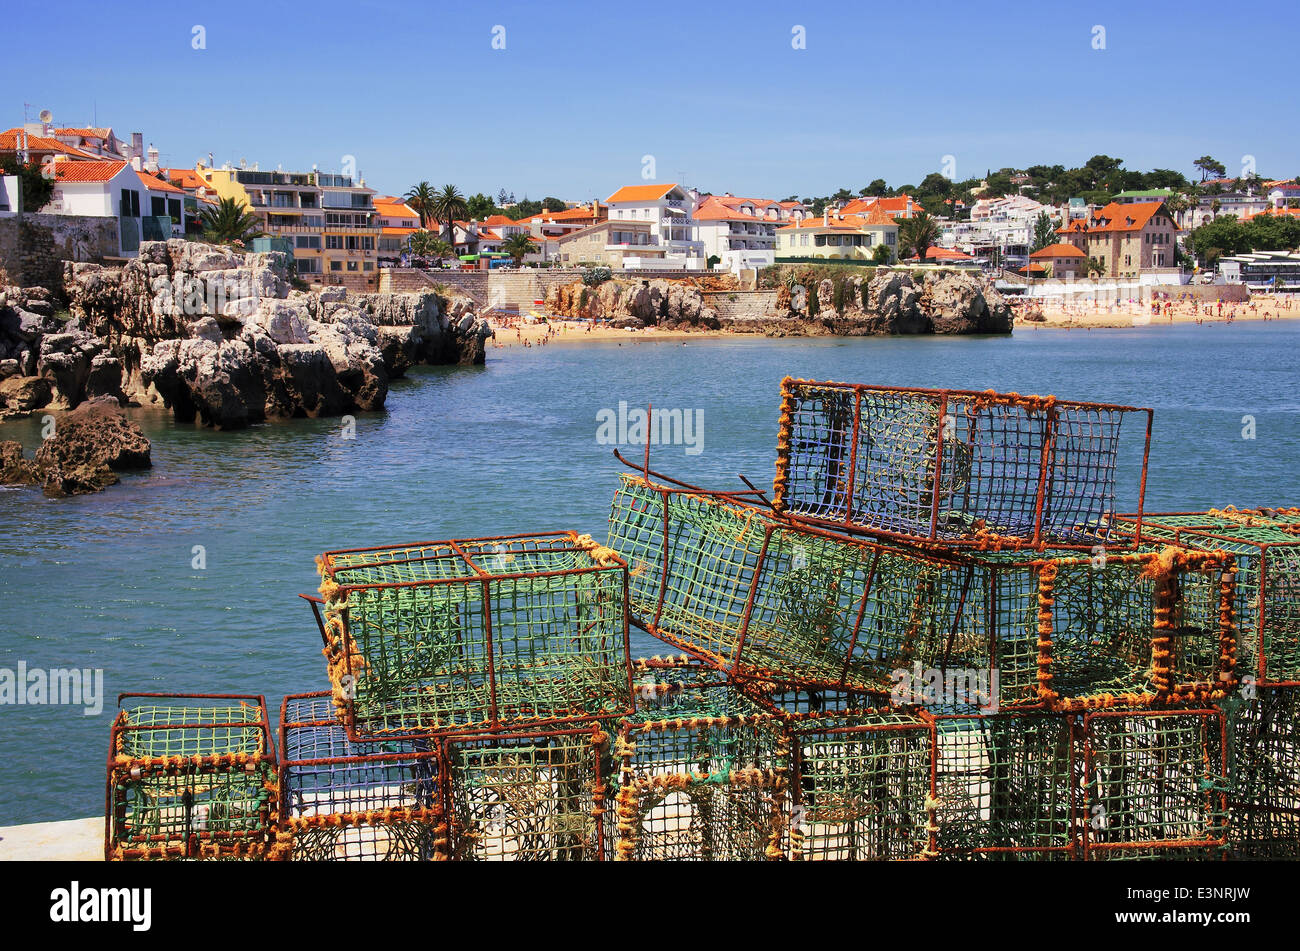 Fishing traps in a port and overall view of the beautiful touristic village of Cascais, Portugal. - Stock Image